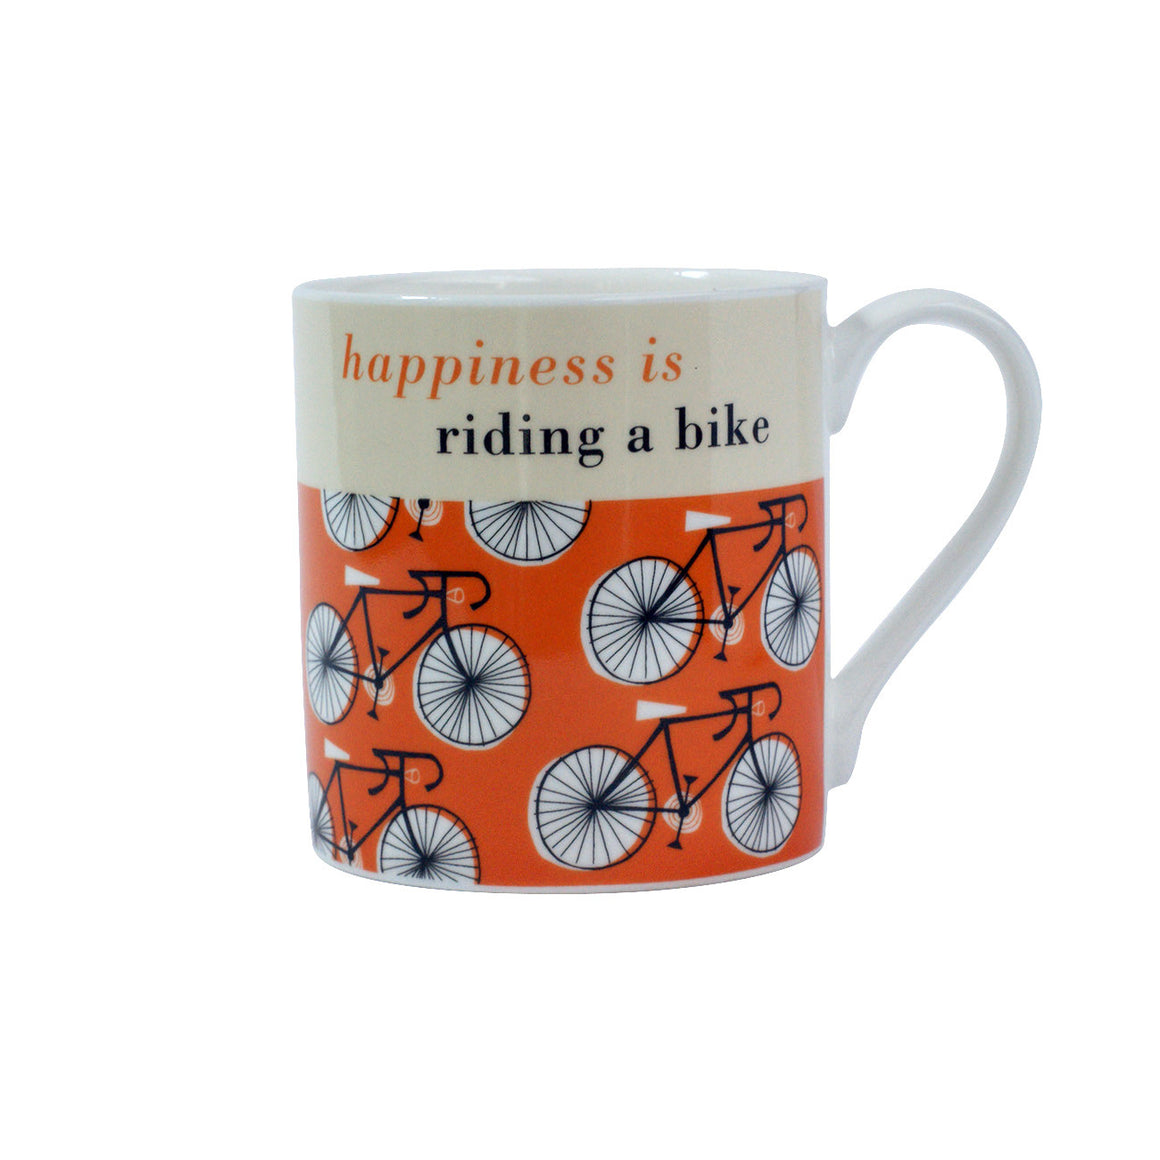 Happiness is riding a bike- mug